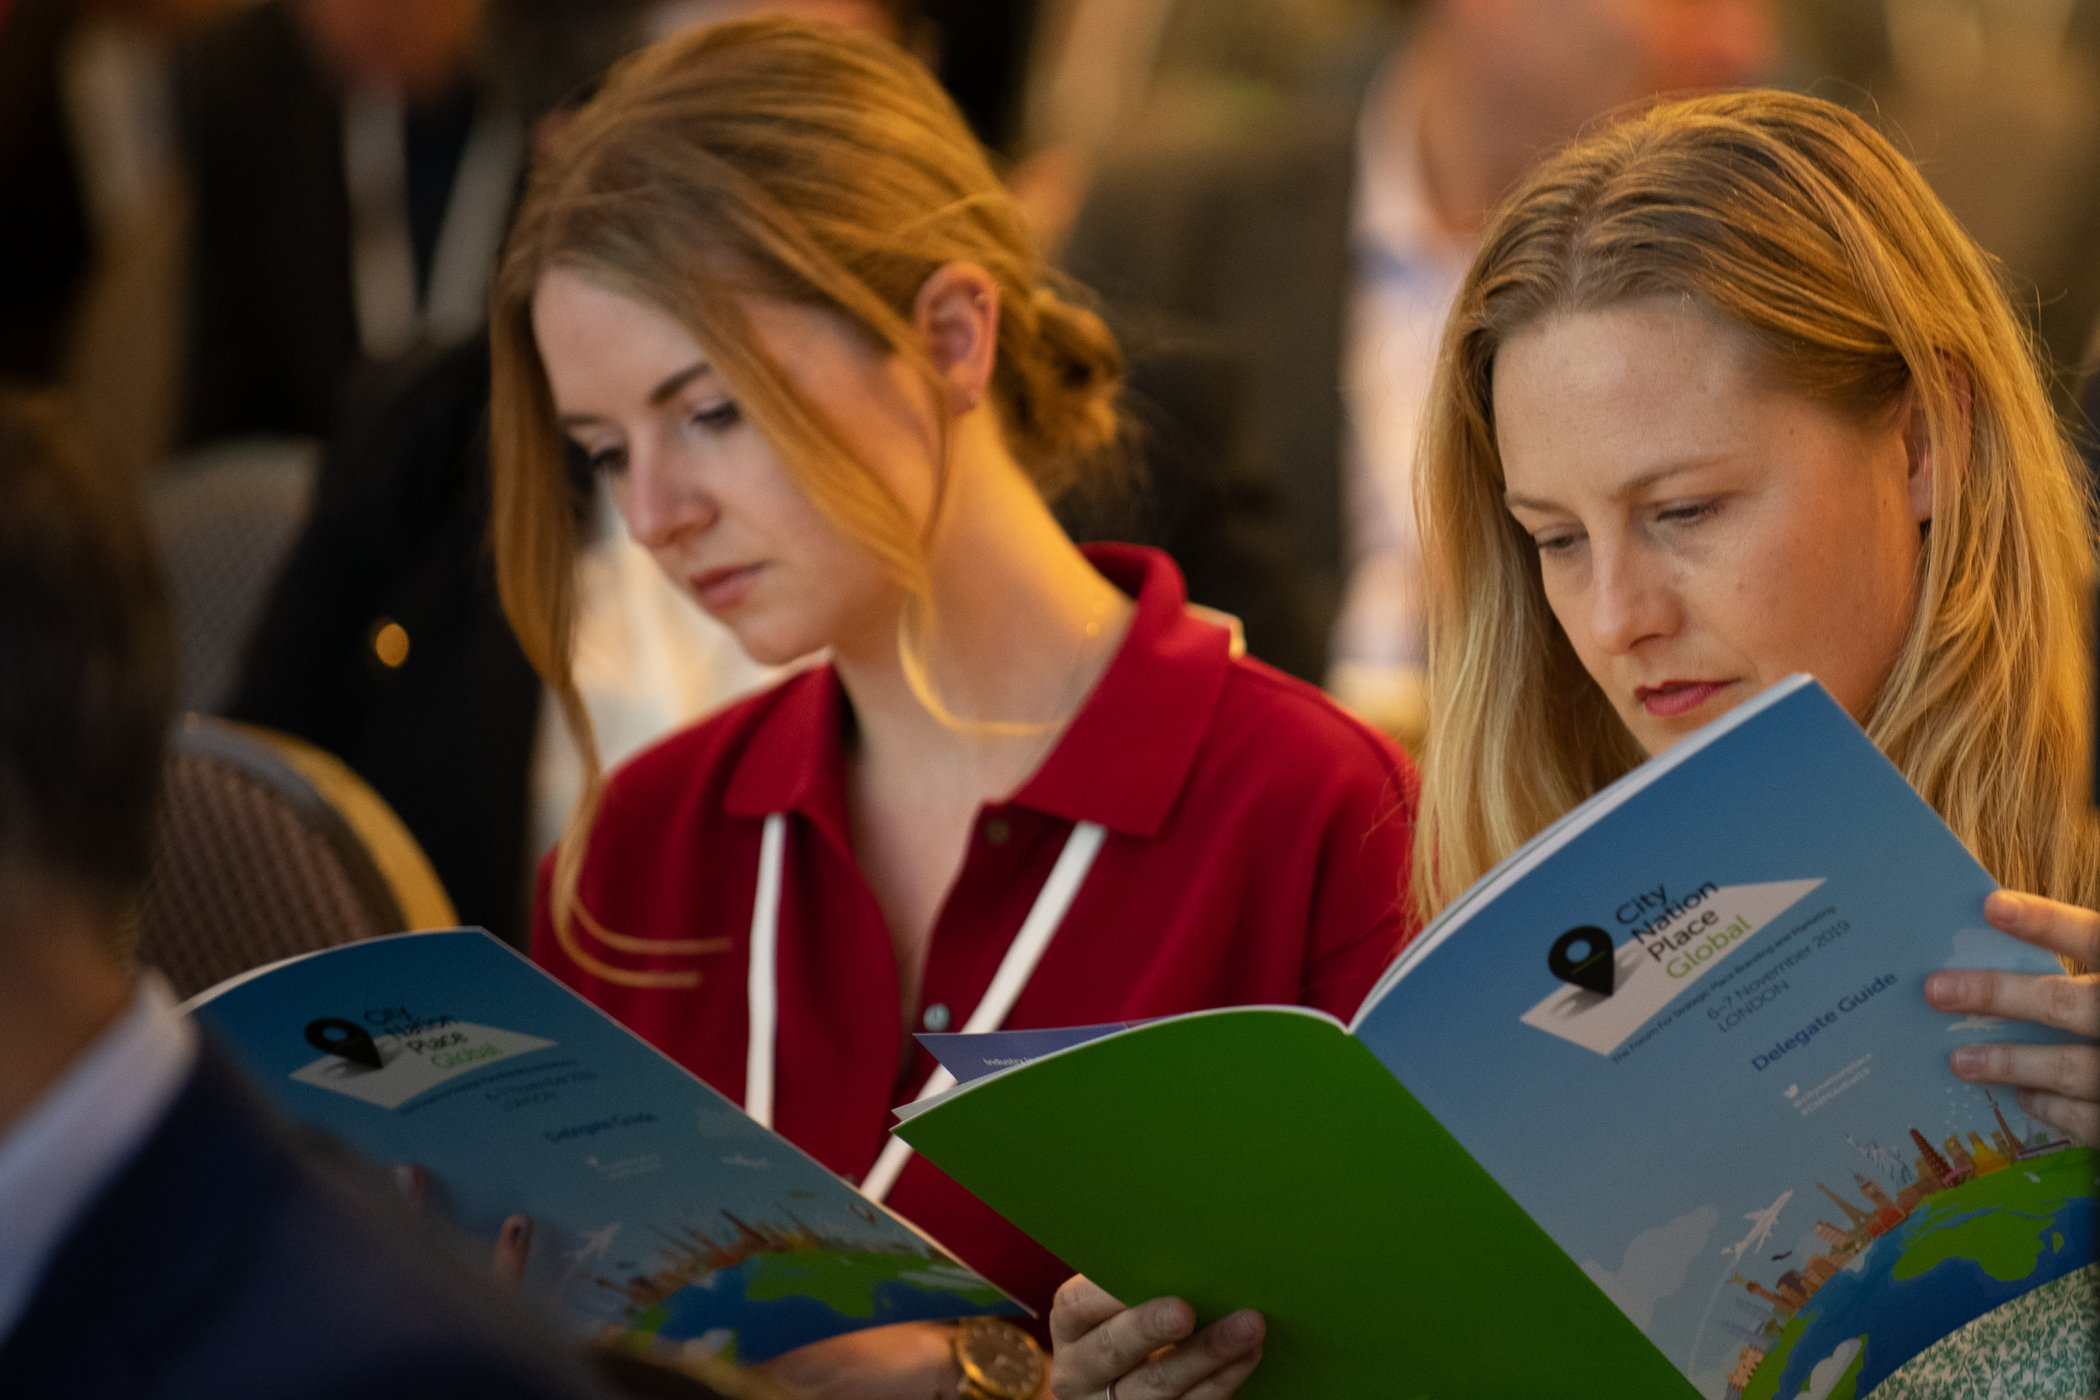 Two people reading delegate books